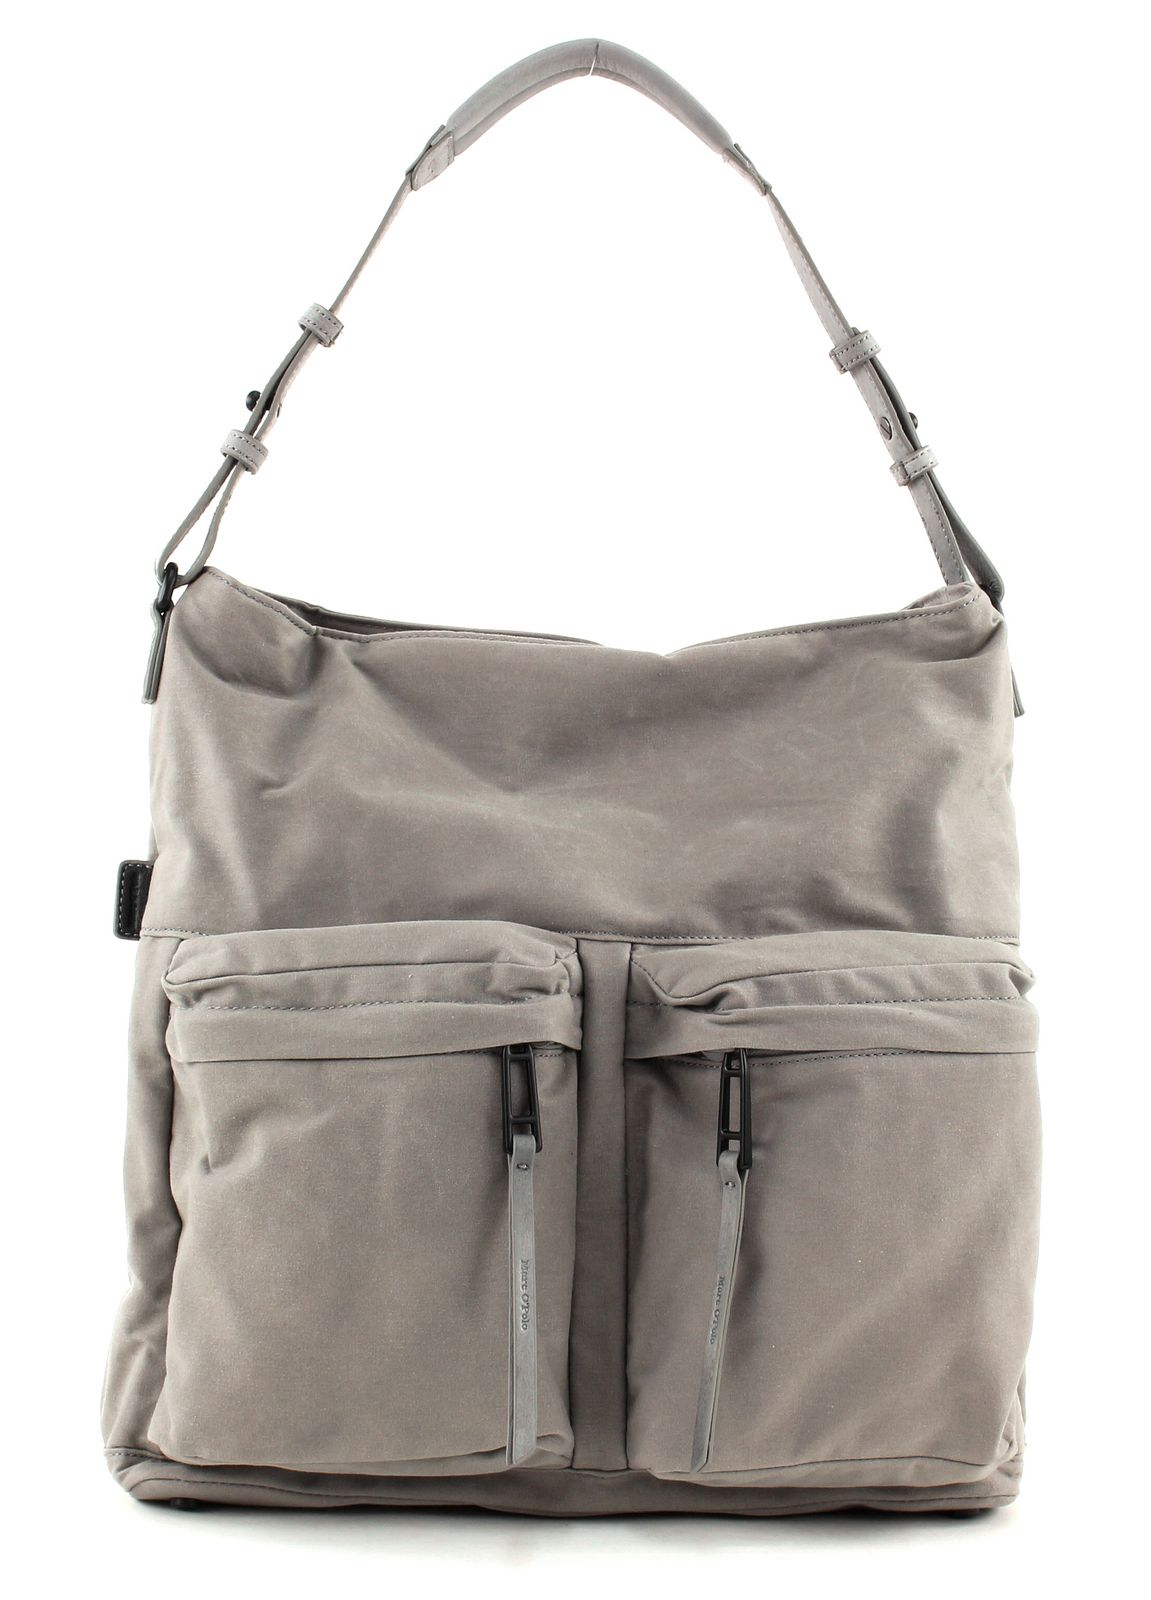 8196c8c620 ... Invoice and sofortüberweisung.deMarc O Polo Natural Waxed Canvas Hobo  Bag L Light Grey   99